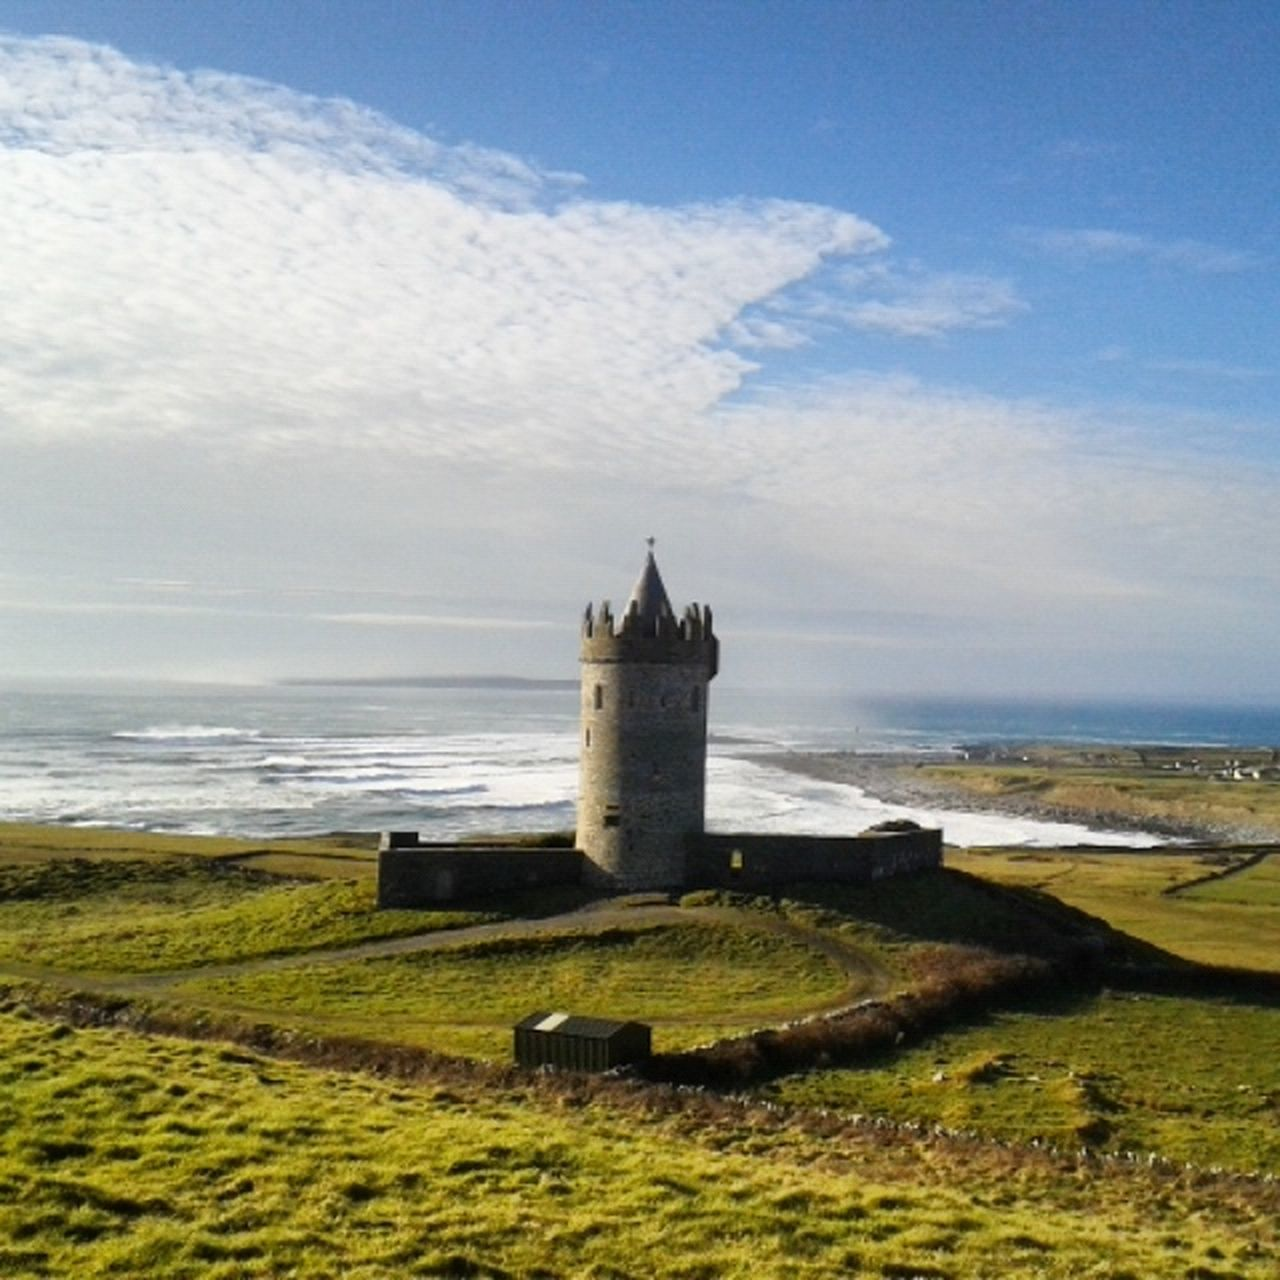 sea, history, sky, water, horizon over water, architecture, day, tower, built structure, cloud - sky, beach, no people, nature, outdoors, tranquility, castle, scenics, building exterior, lighthouse, beauty in nature, grass